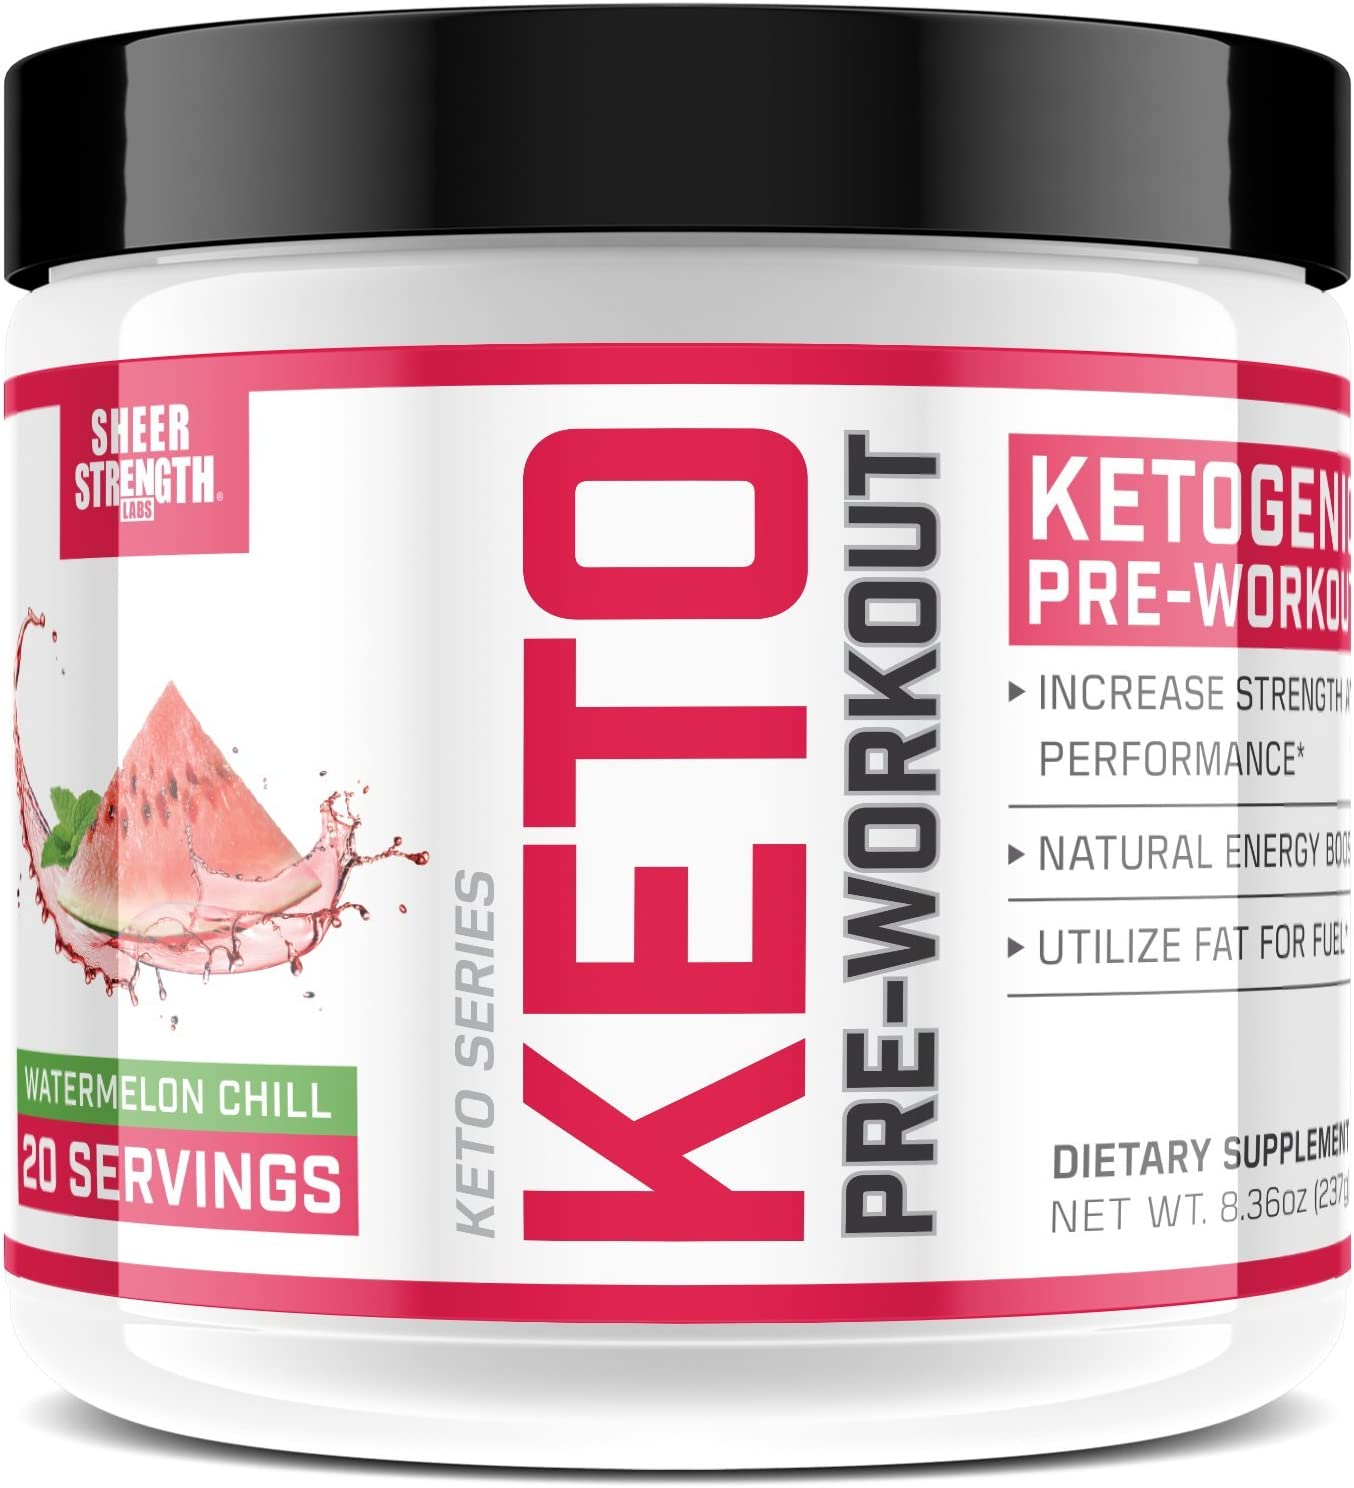 Ketogenic Pre Workout Supplement - Promotes Healthy Weight Loss, Fat Burning